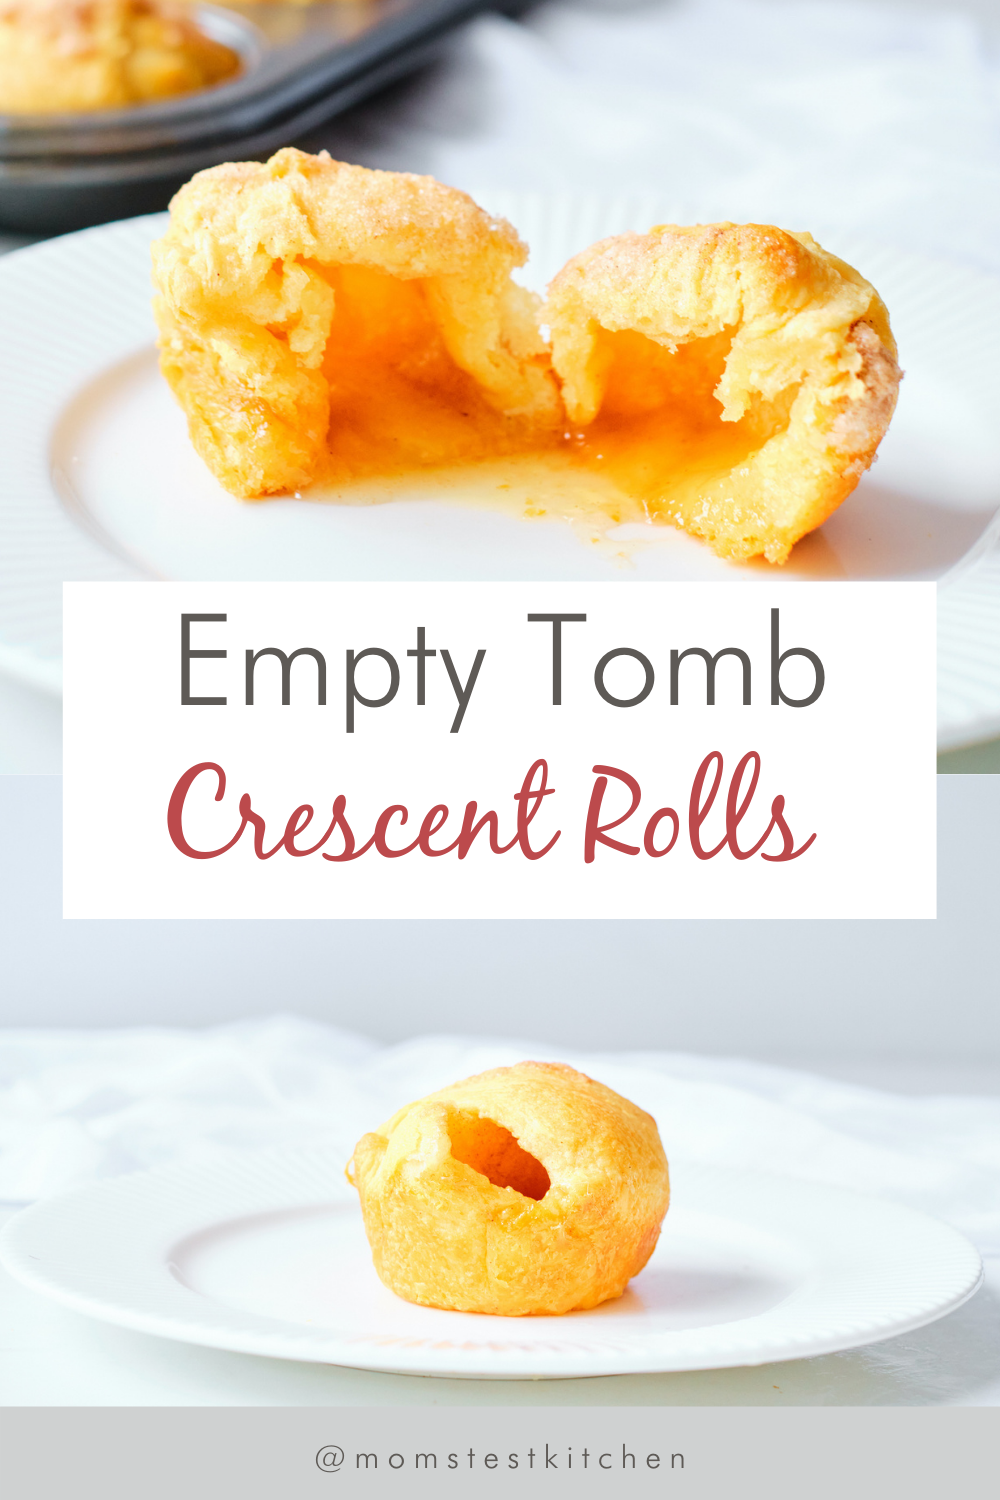 Empty Tomb Crescent Rolls AKA Resurrection Rolls is the perfect recipe for Easter. Easy cinnamon-sugar coated crescent rolls filled with a gooey,melting marshmallow inside makes a great object lesson for kids, teaching the true meaning of Easter.